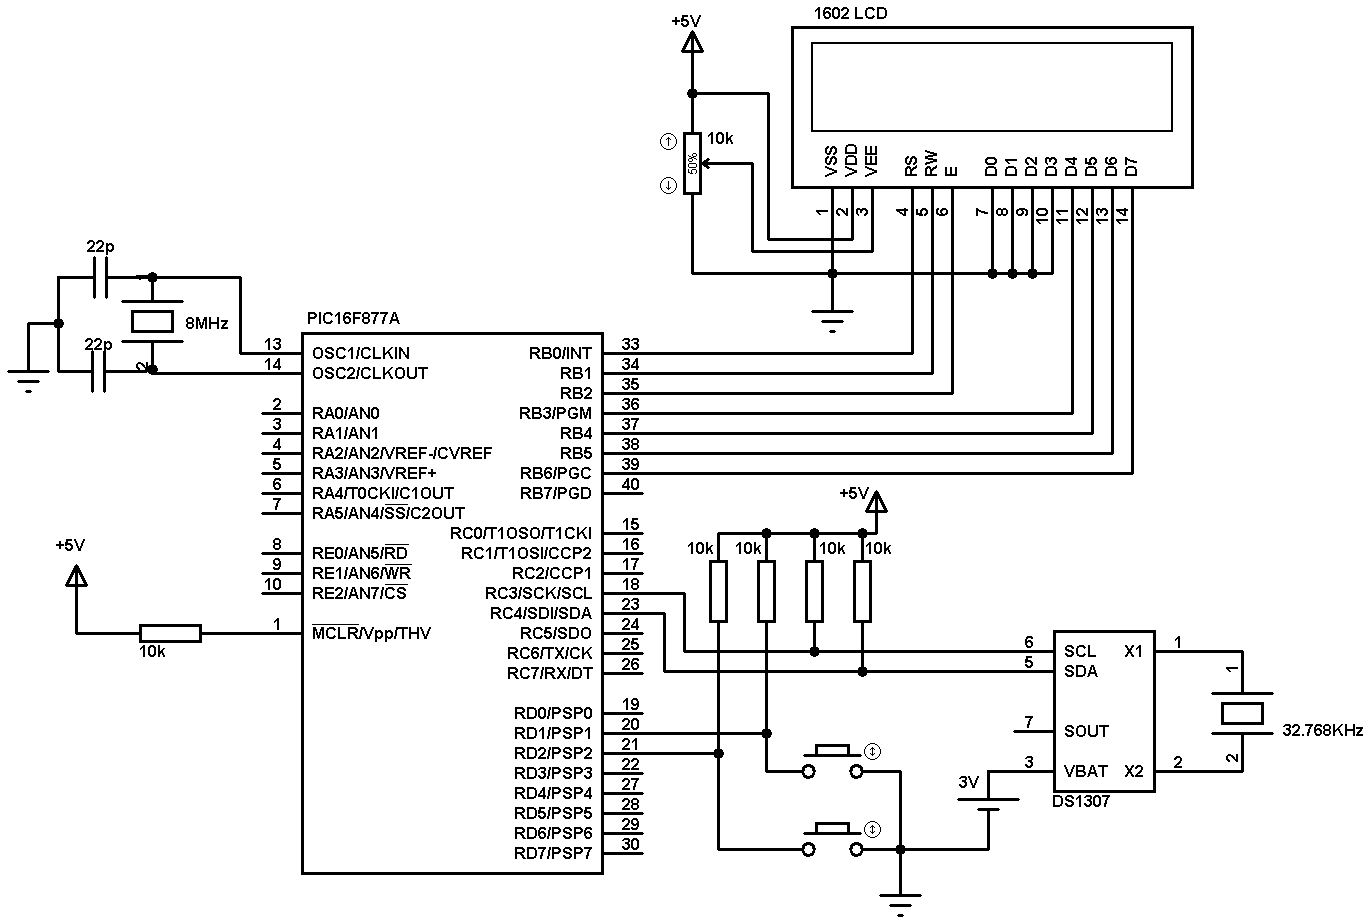 Time Clock Schematic Trusted Wiring Diagram Arduinorealtimeclockcircuit Breadboard Real Using Pic16f877a And Ds1307 Rtc Ccs C Simple